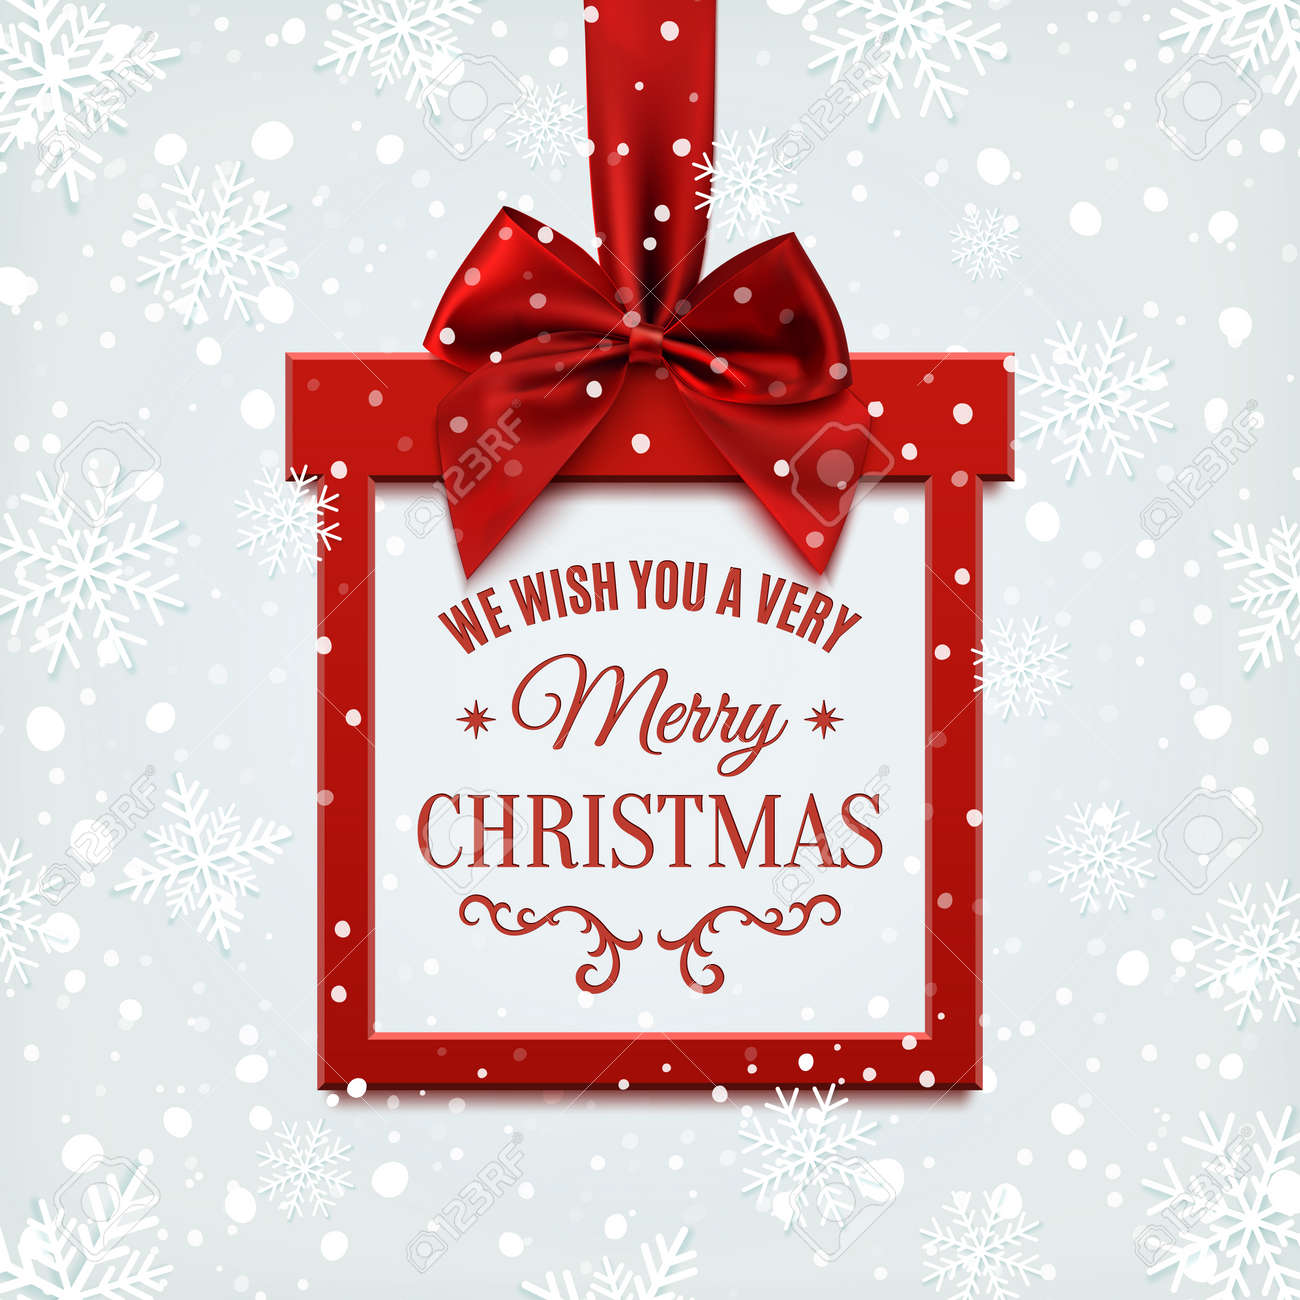 we wish you a very merry christmas square banner in form of